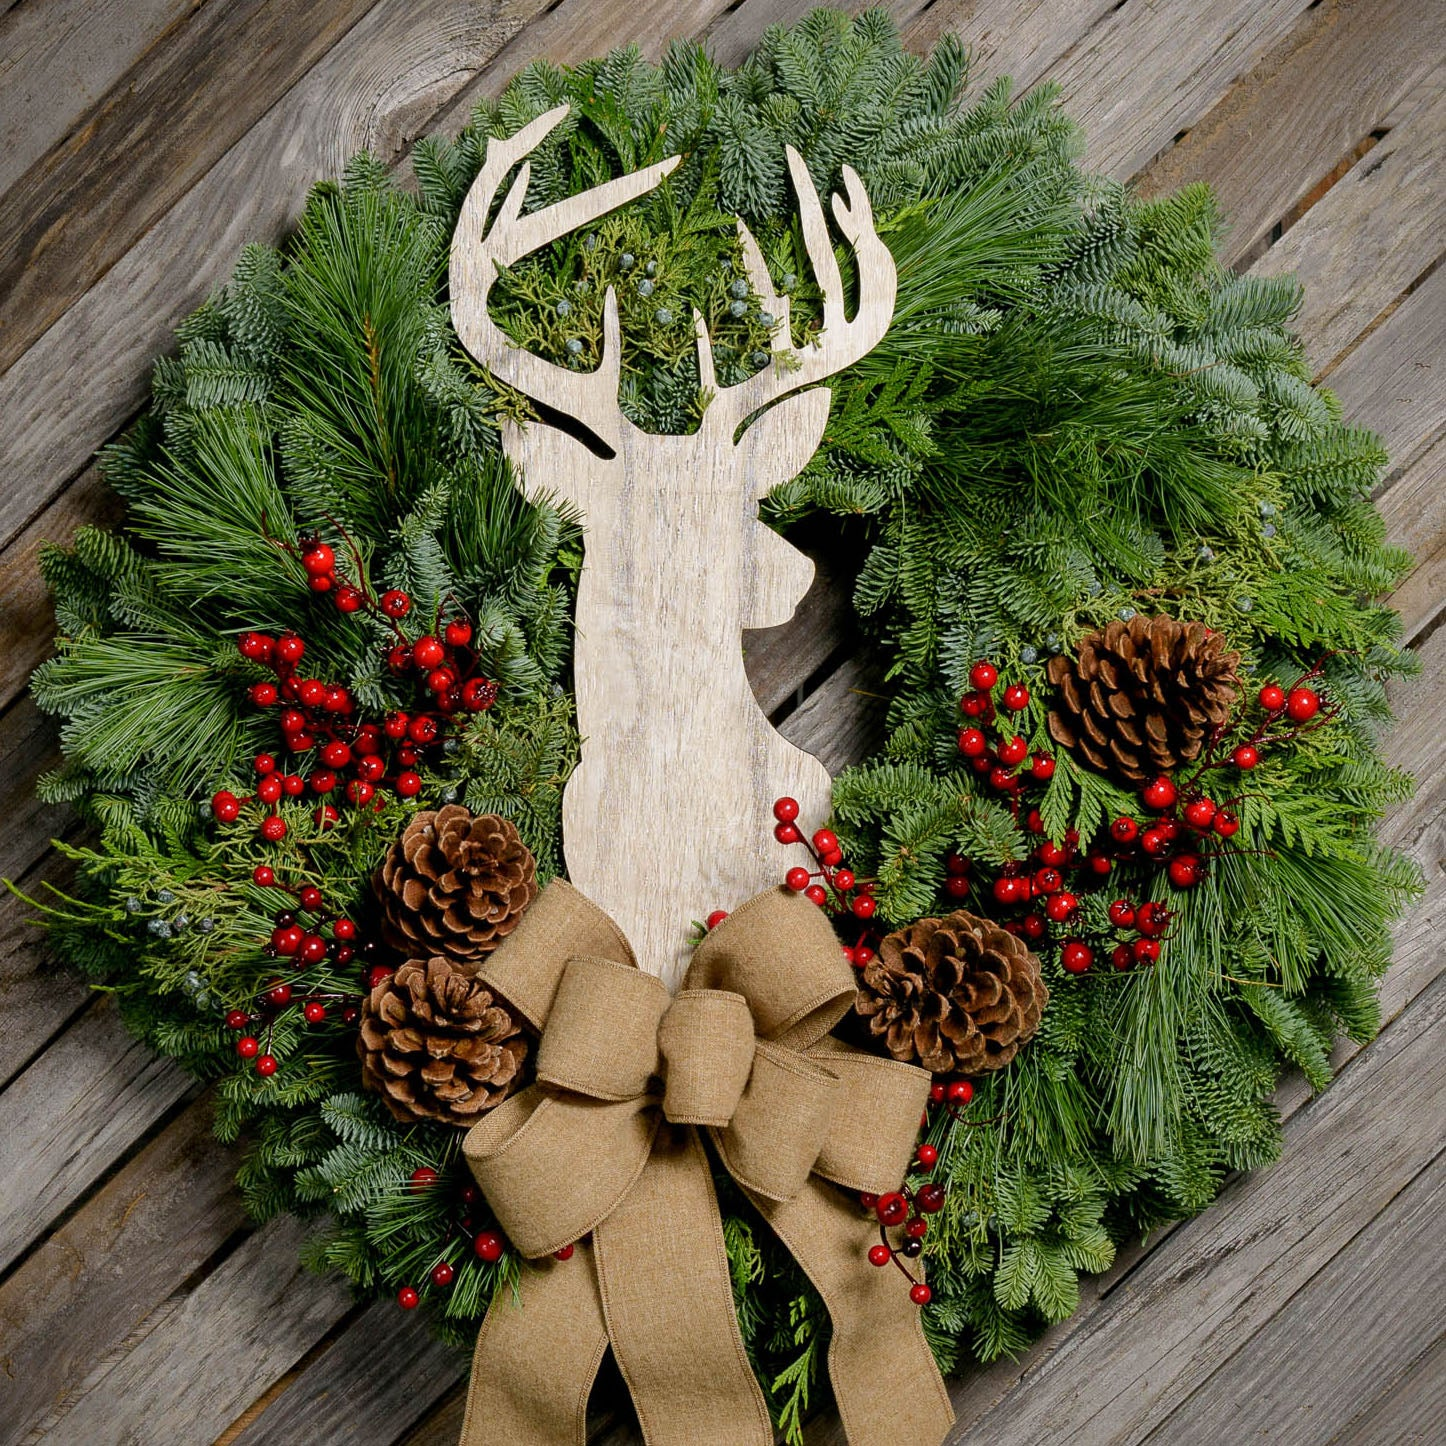 Fresh Evergreen wreath with pine cones, red berries, whitewashed stag head and natural linen bow close up